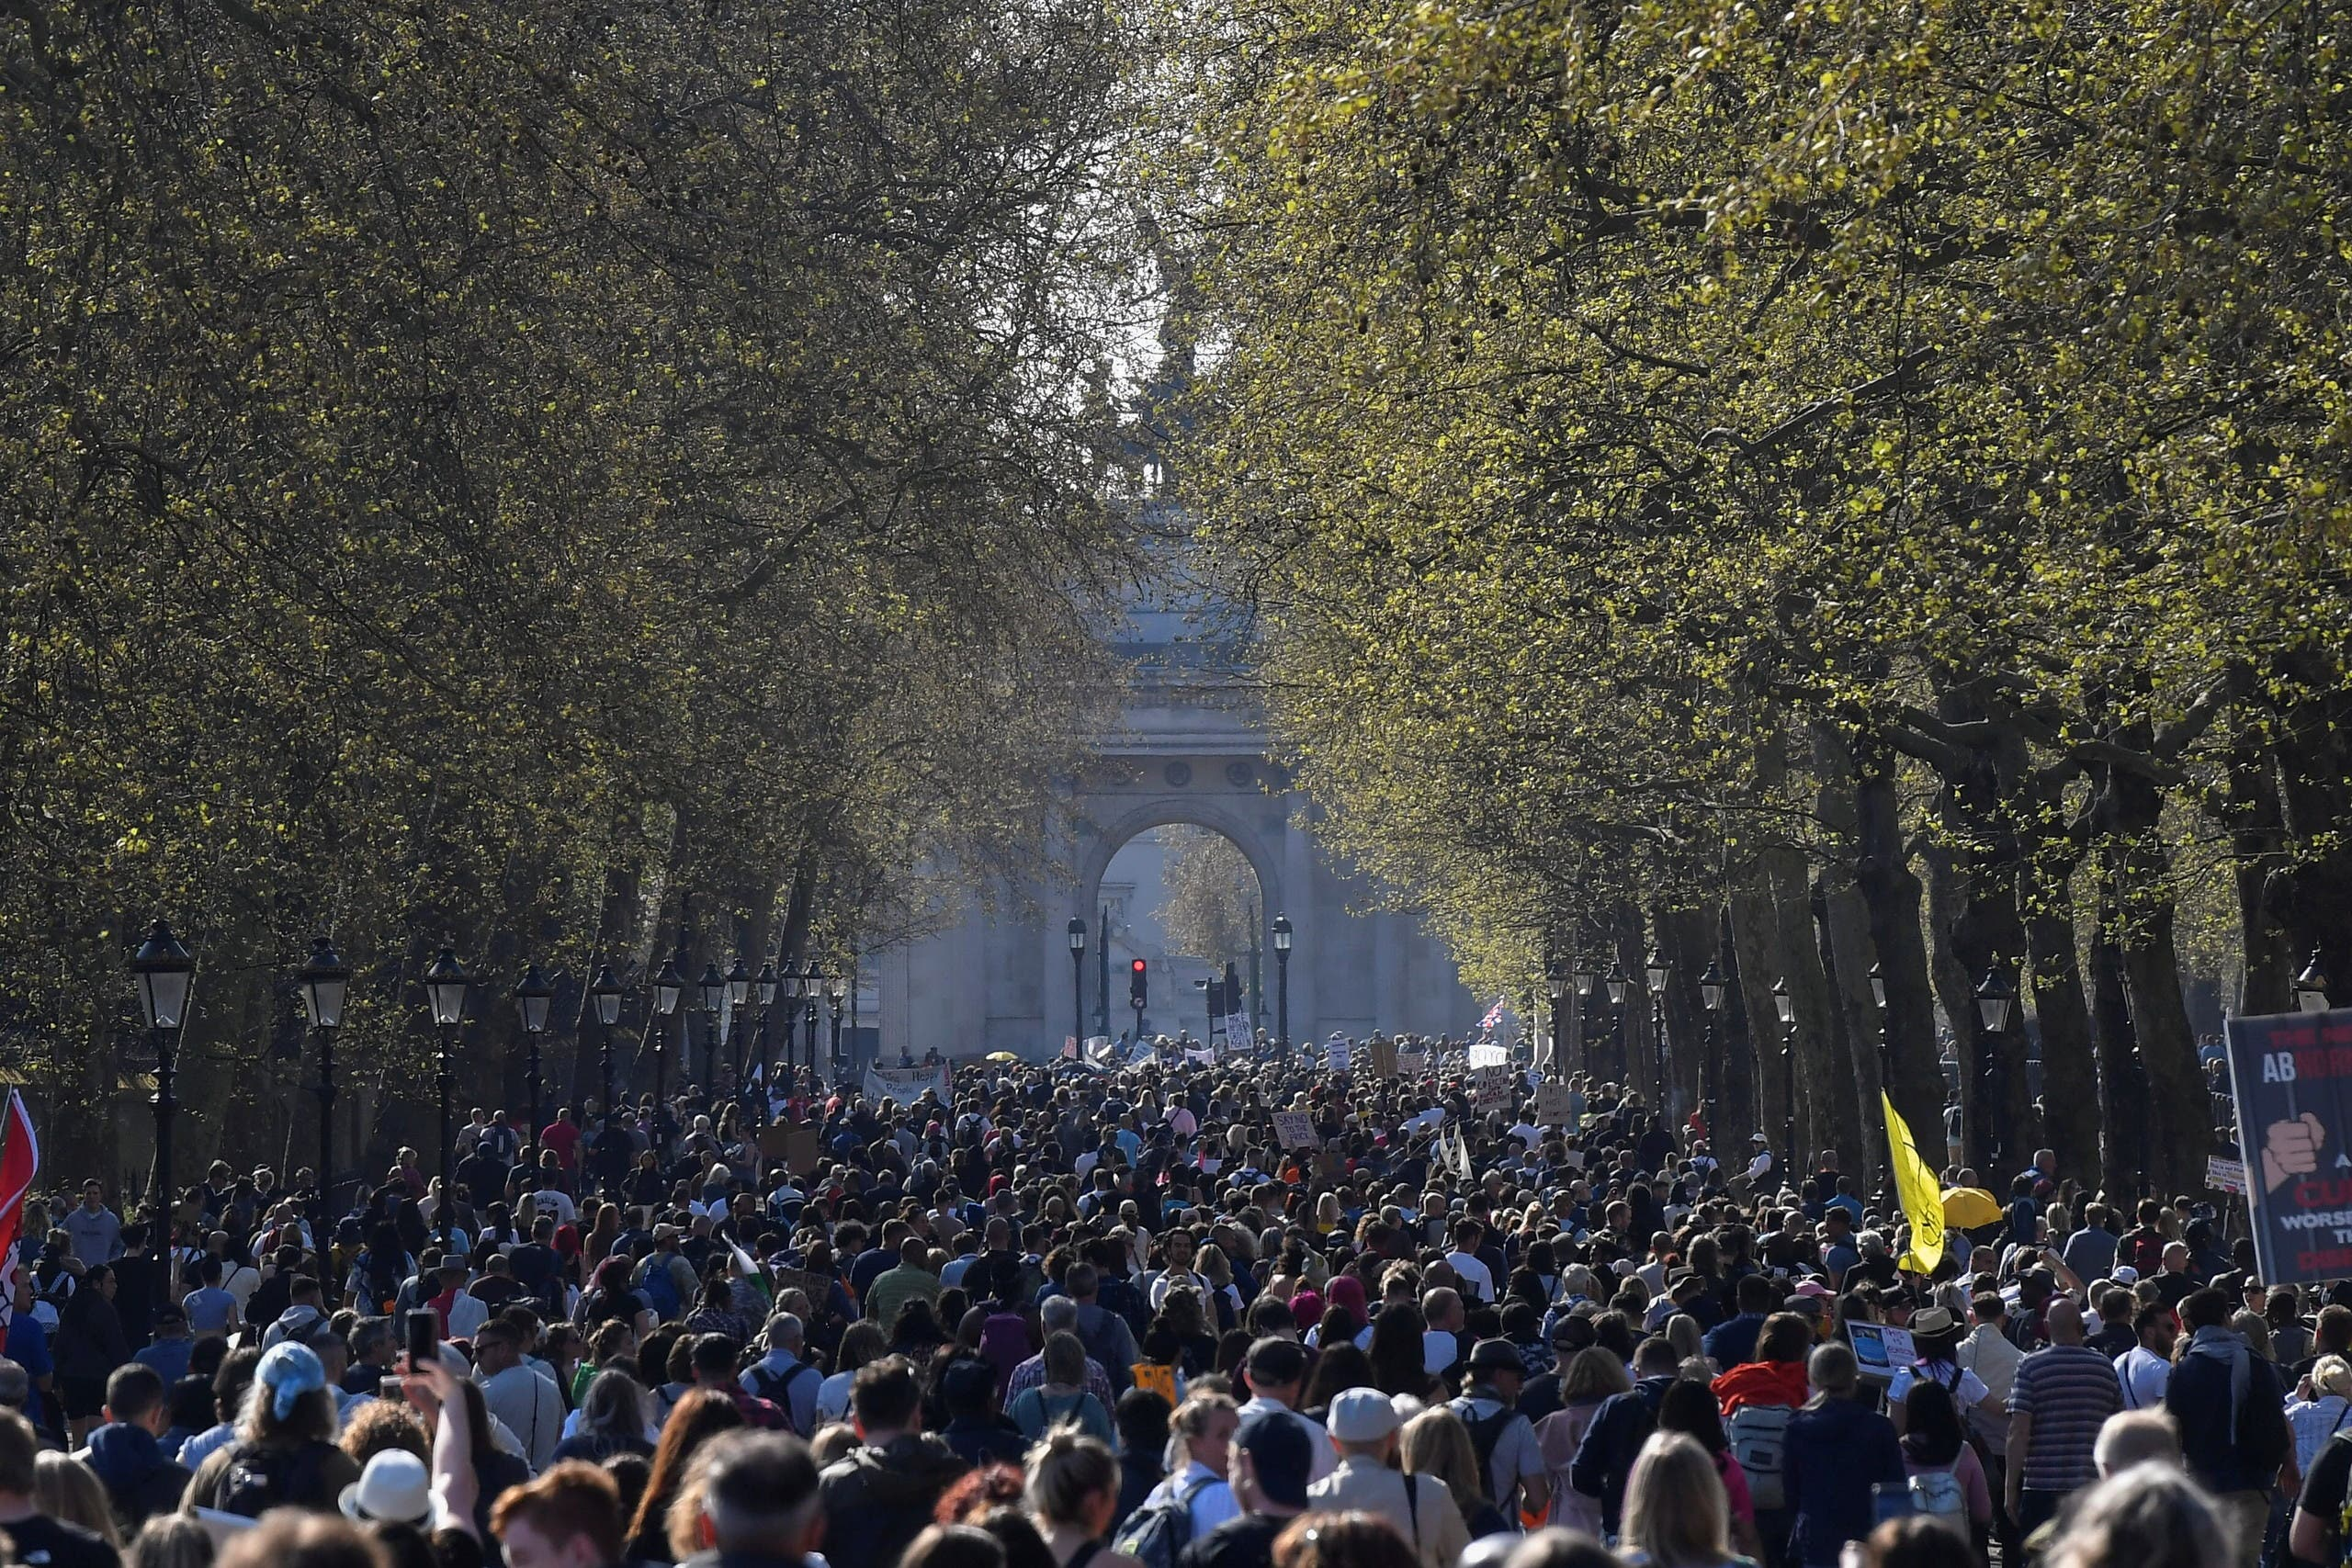 Demonstrators march during an anti-lockdown 'Unite for Freedom' protest, amid the spread of the coronavirus disease (COVID-19), in London, Britain, April 24, 2021. (Reuters)